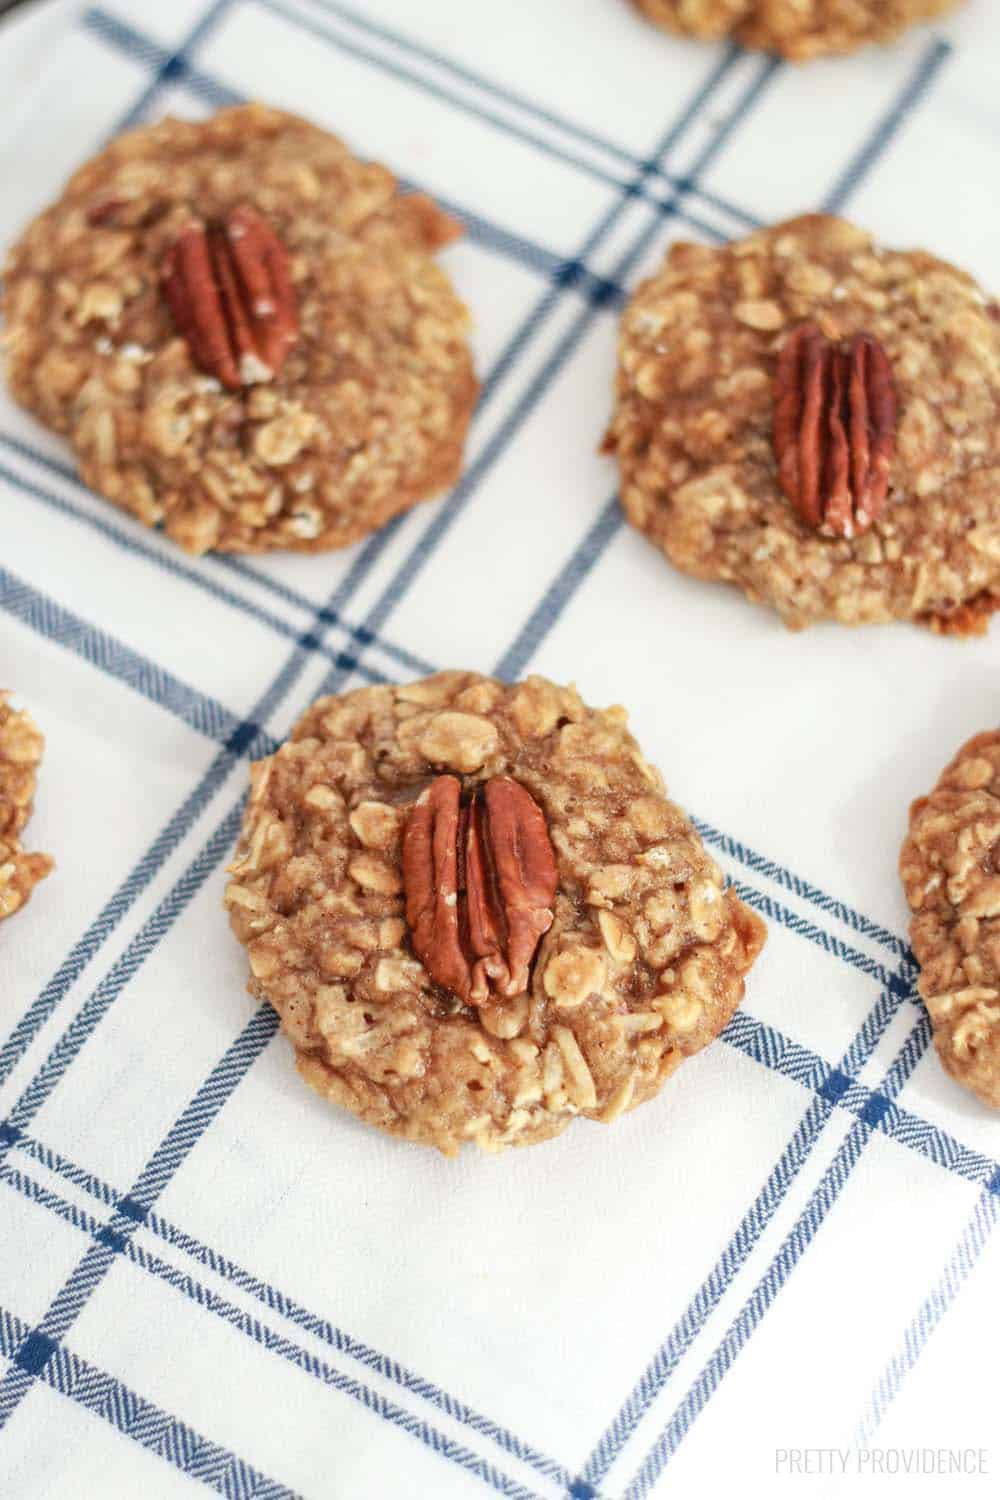 Maple oatmeal cookies with pecans in the middle of each one.